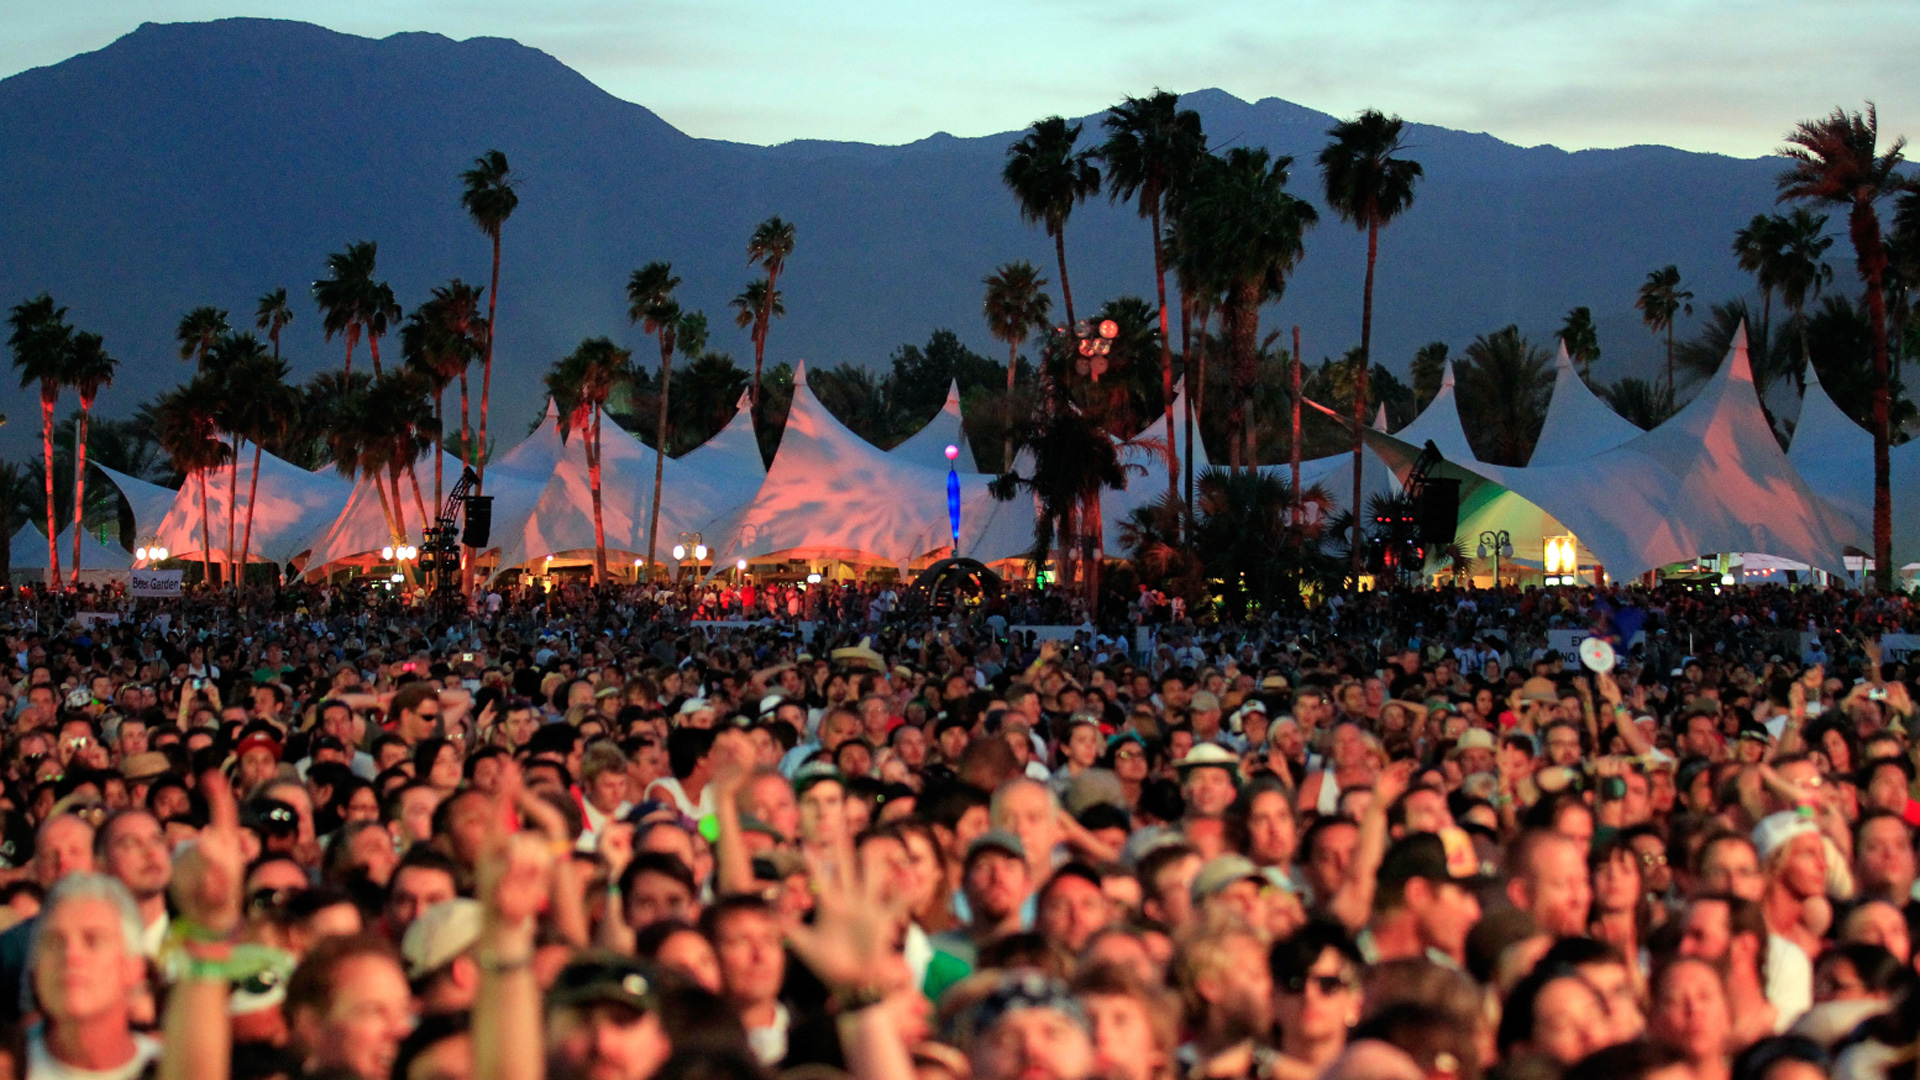 A crowd takes in a performance at the Coachella Valley Music & Arts Festival in Indio on April 17, 2011. (Getty Images)